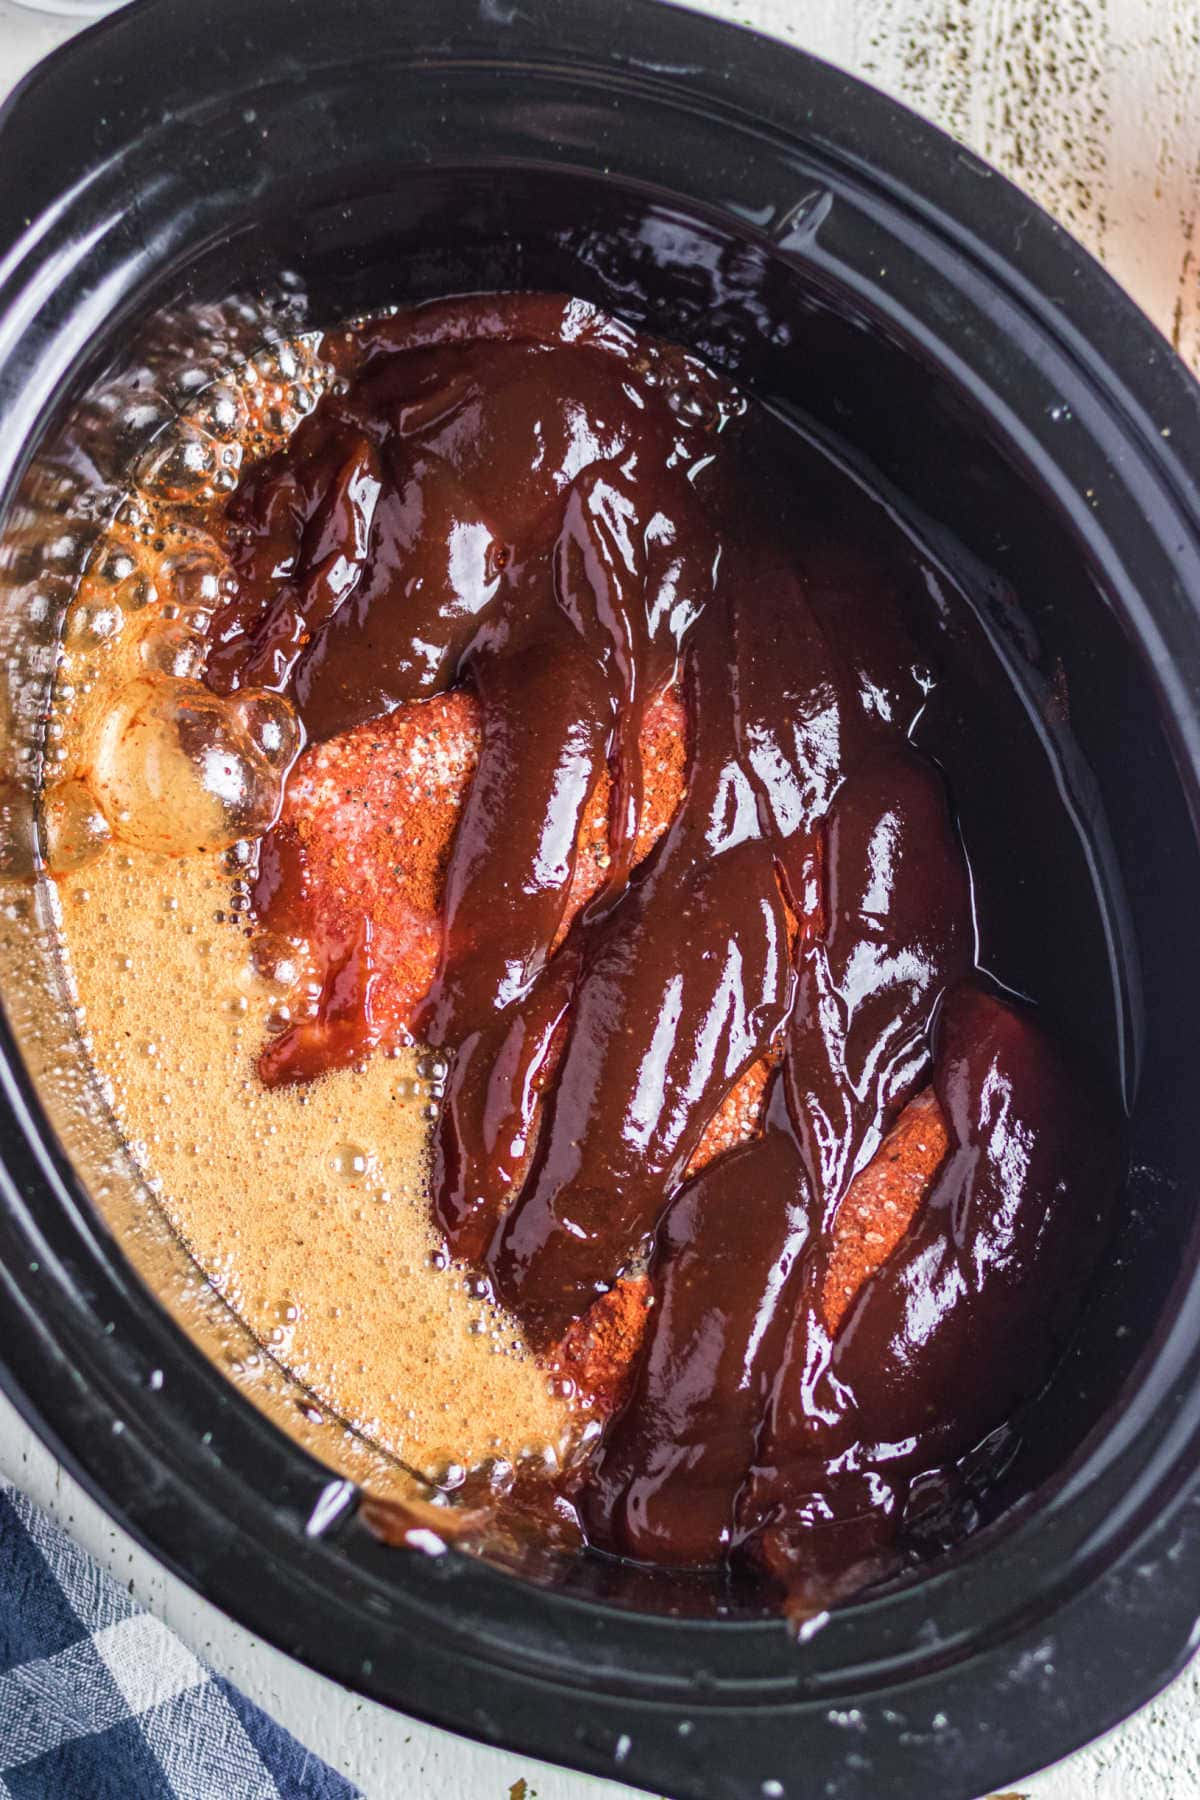 Image shows the remaining ingredients being added to the slow cooker.